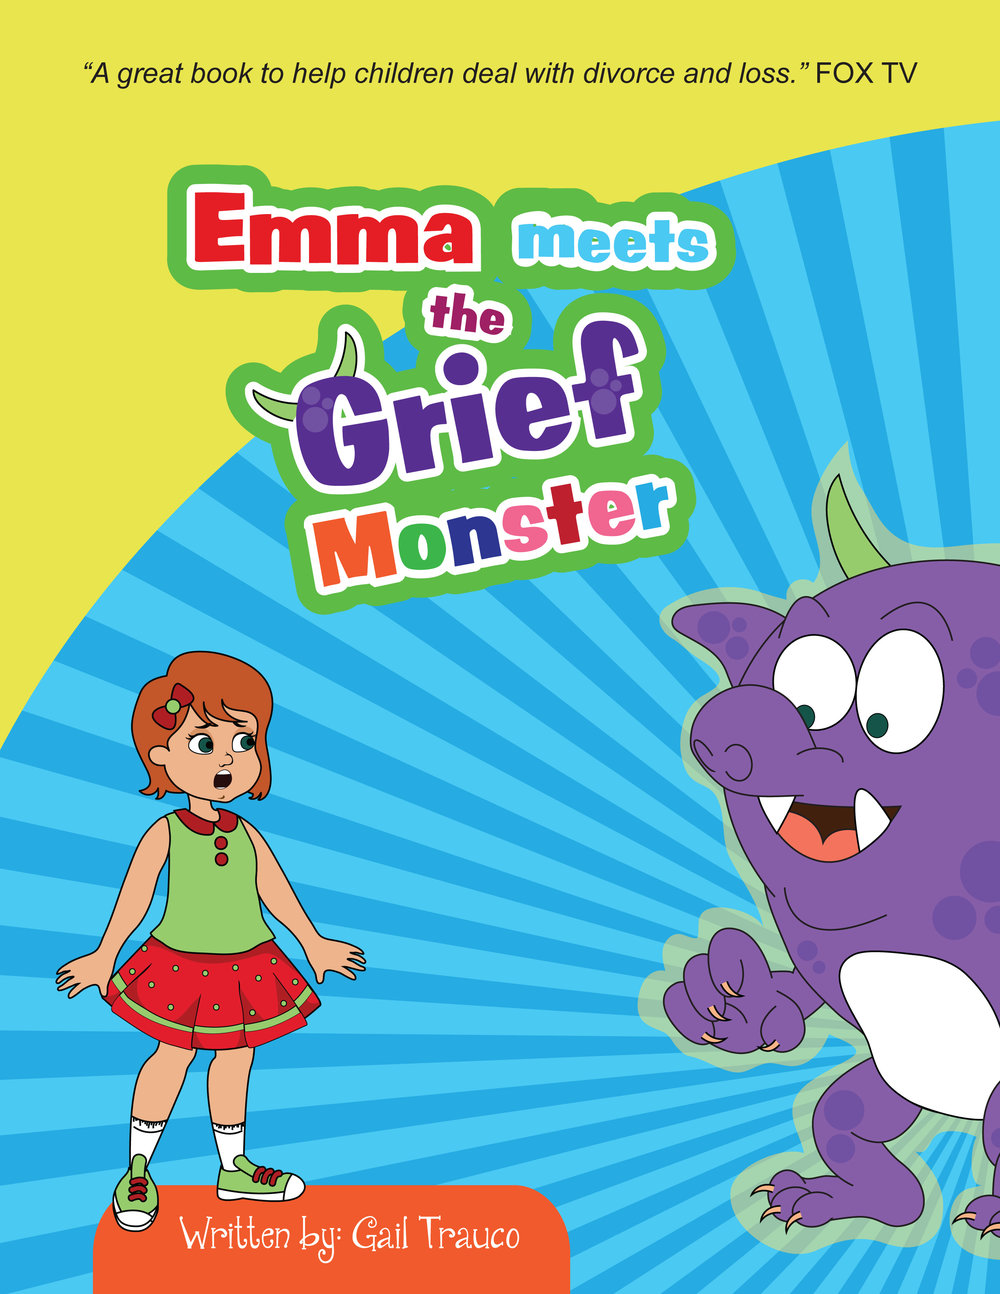 grief_monster_cover_new.indd